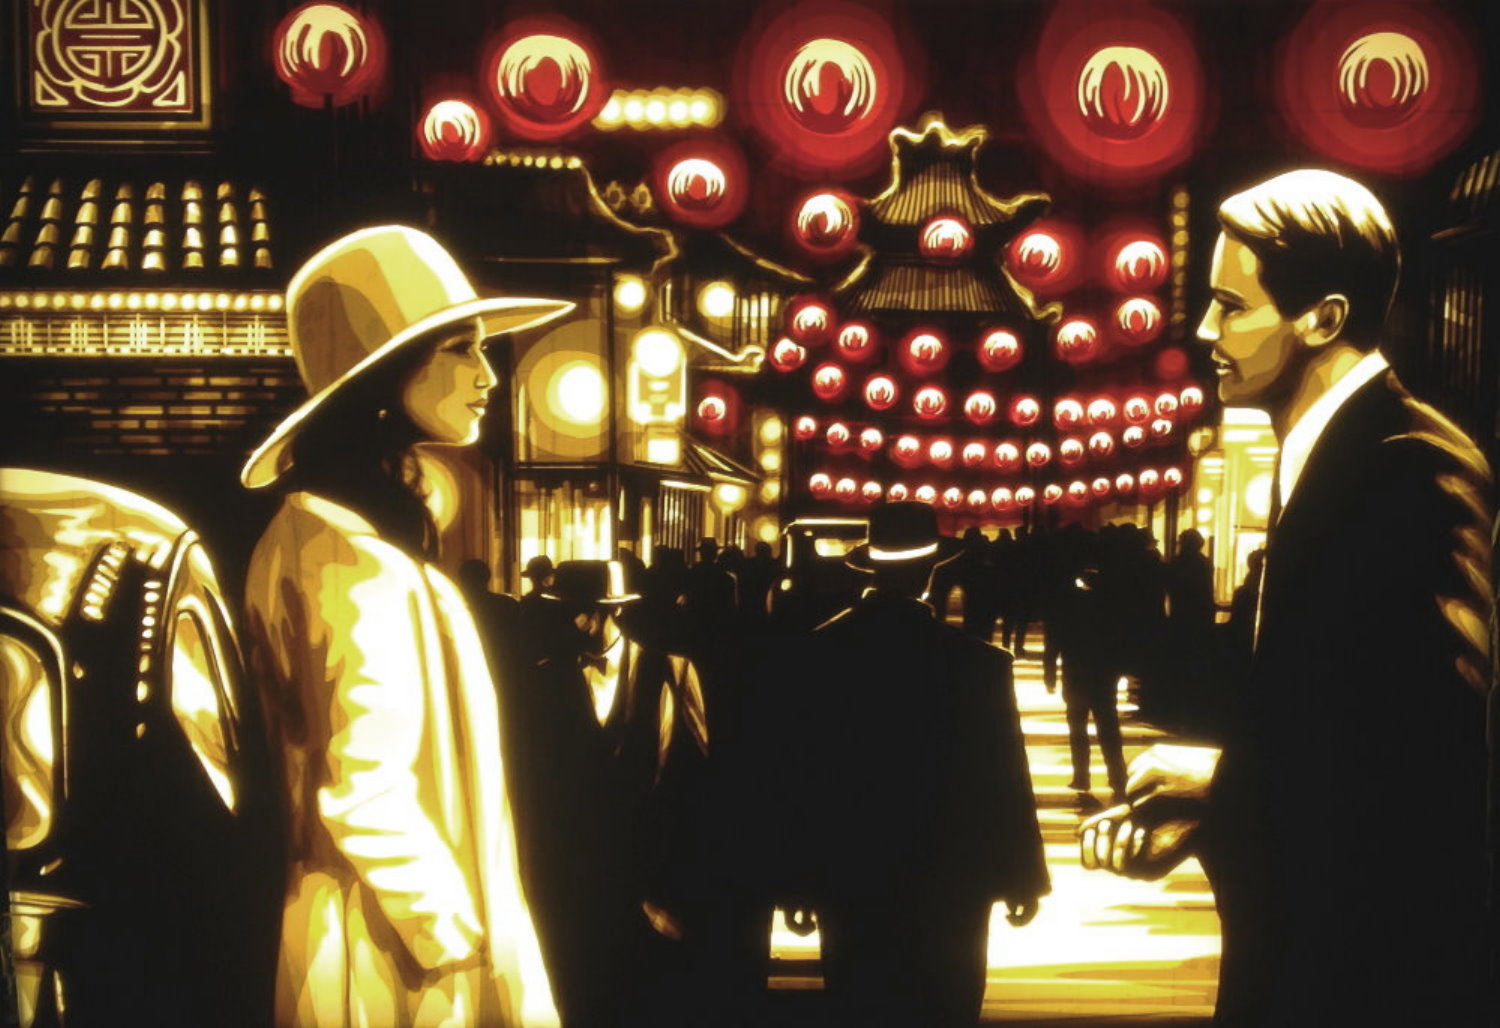 tape-art-by-max-zorn-china-town-tales-2